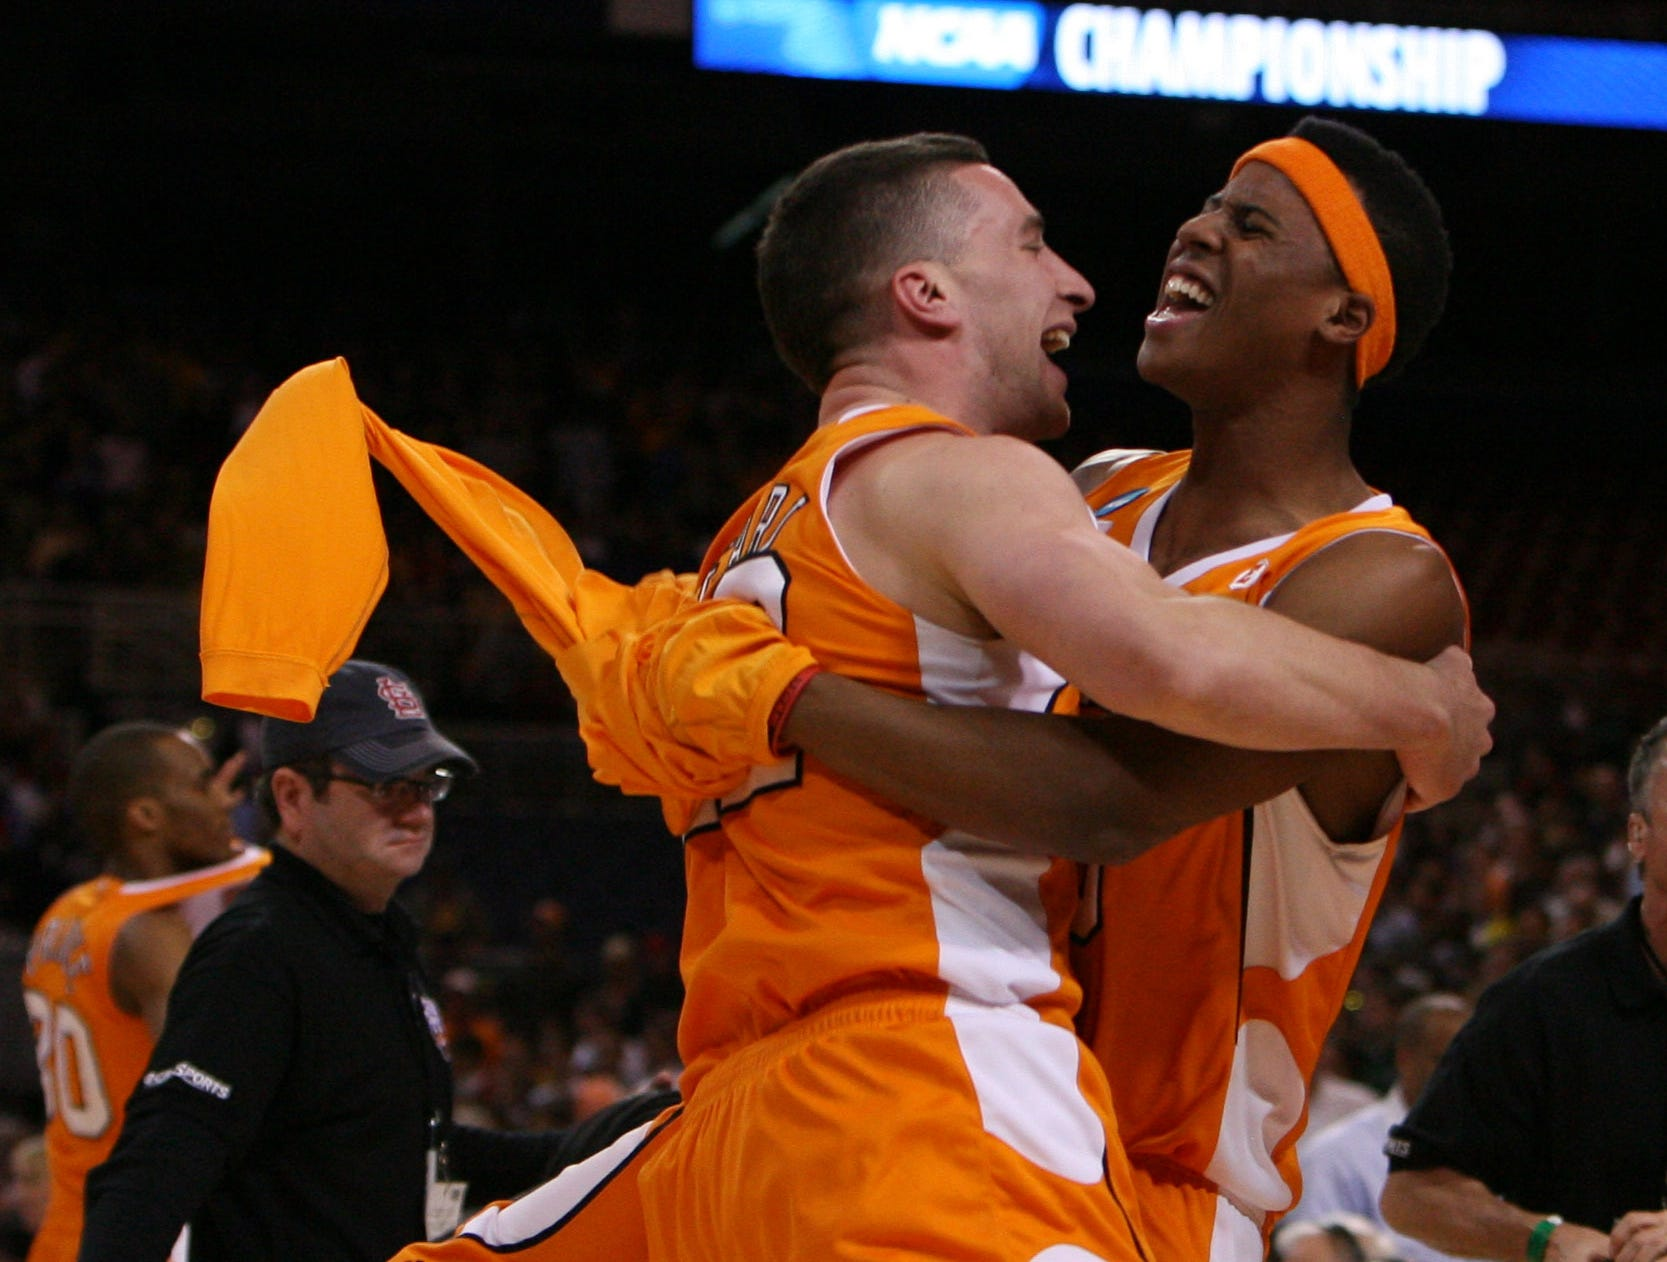 Tennessee's Steven Pearl, left, and Renaldo Woolridge, right, celebrate after the Vols defeated the Ohio State Buckeyes 76-73 during the NCAA tournament Sweet Sixteen at the Edward Jones Dome in St. Louis, Mo., Friday, Mar. 26, 2010.